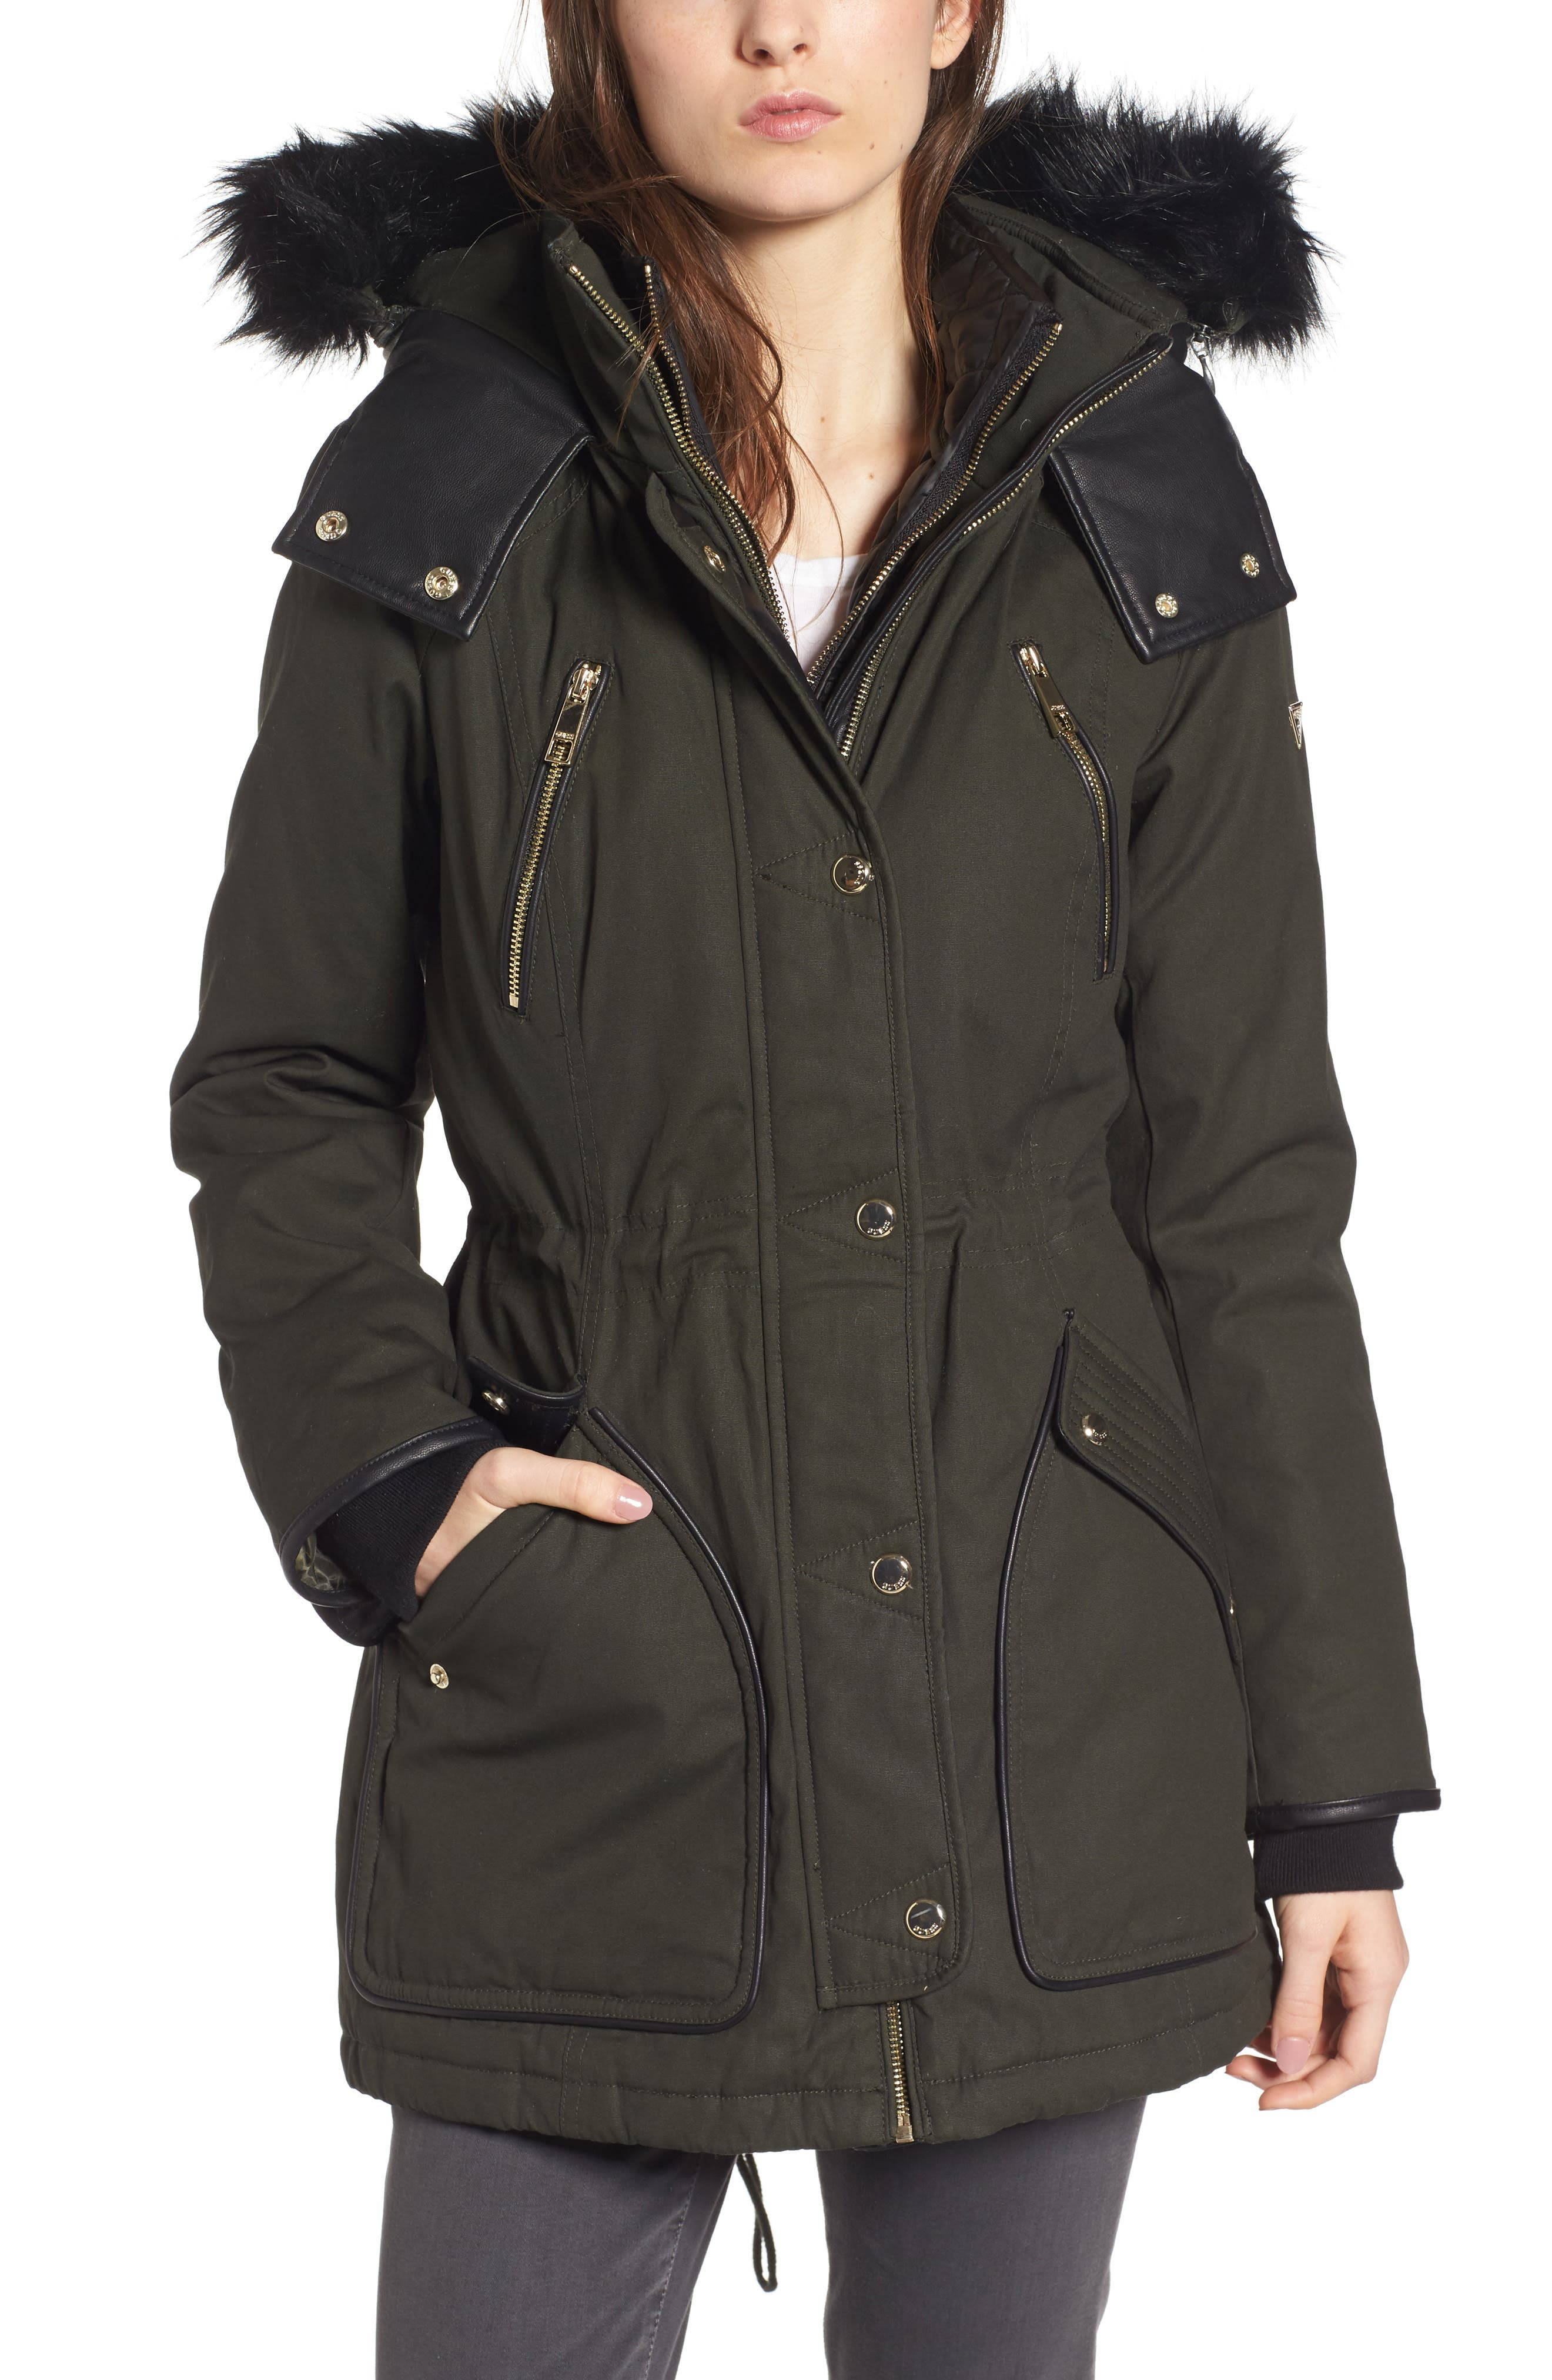 Hooded Anorak with Detachable Faux Fur,                         Main,                         color, Dark Olive